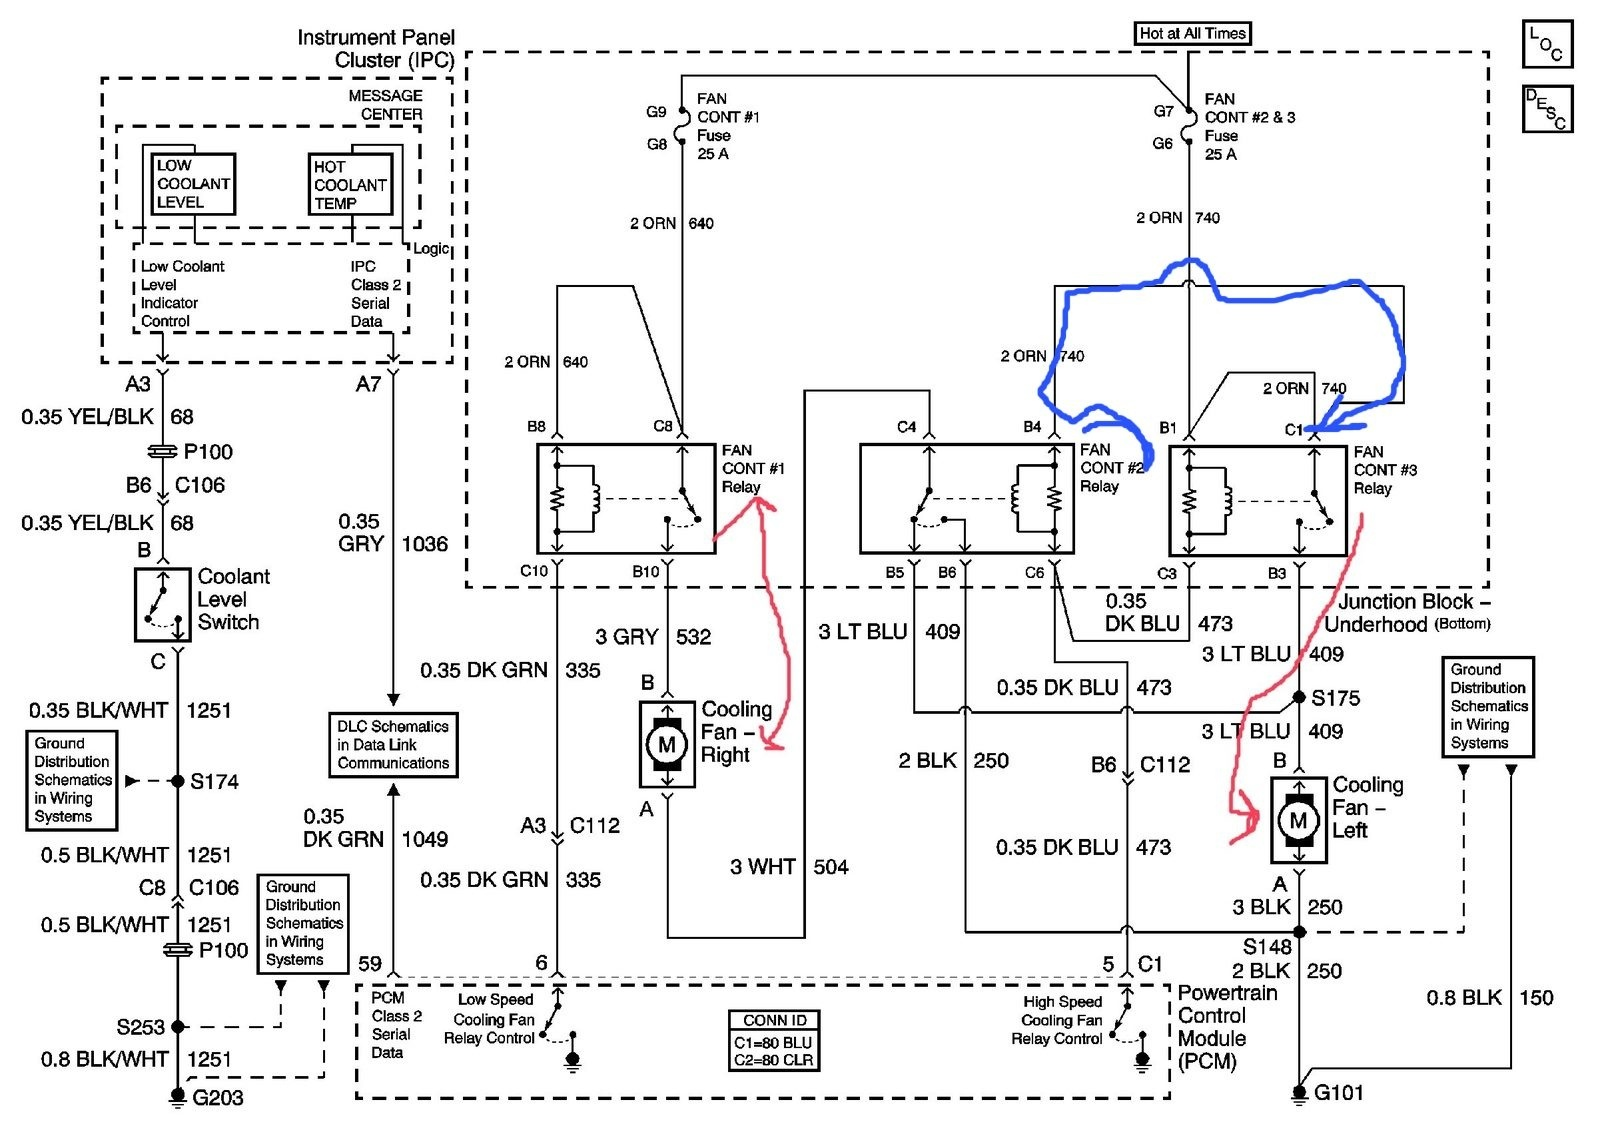 pic 670385593102940210 1600x1200 cooling fan relay wiring diagram engine cooling fan wiring diagram 84 Ford Thunderbird Wiring Diagram at bakdesigns.co